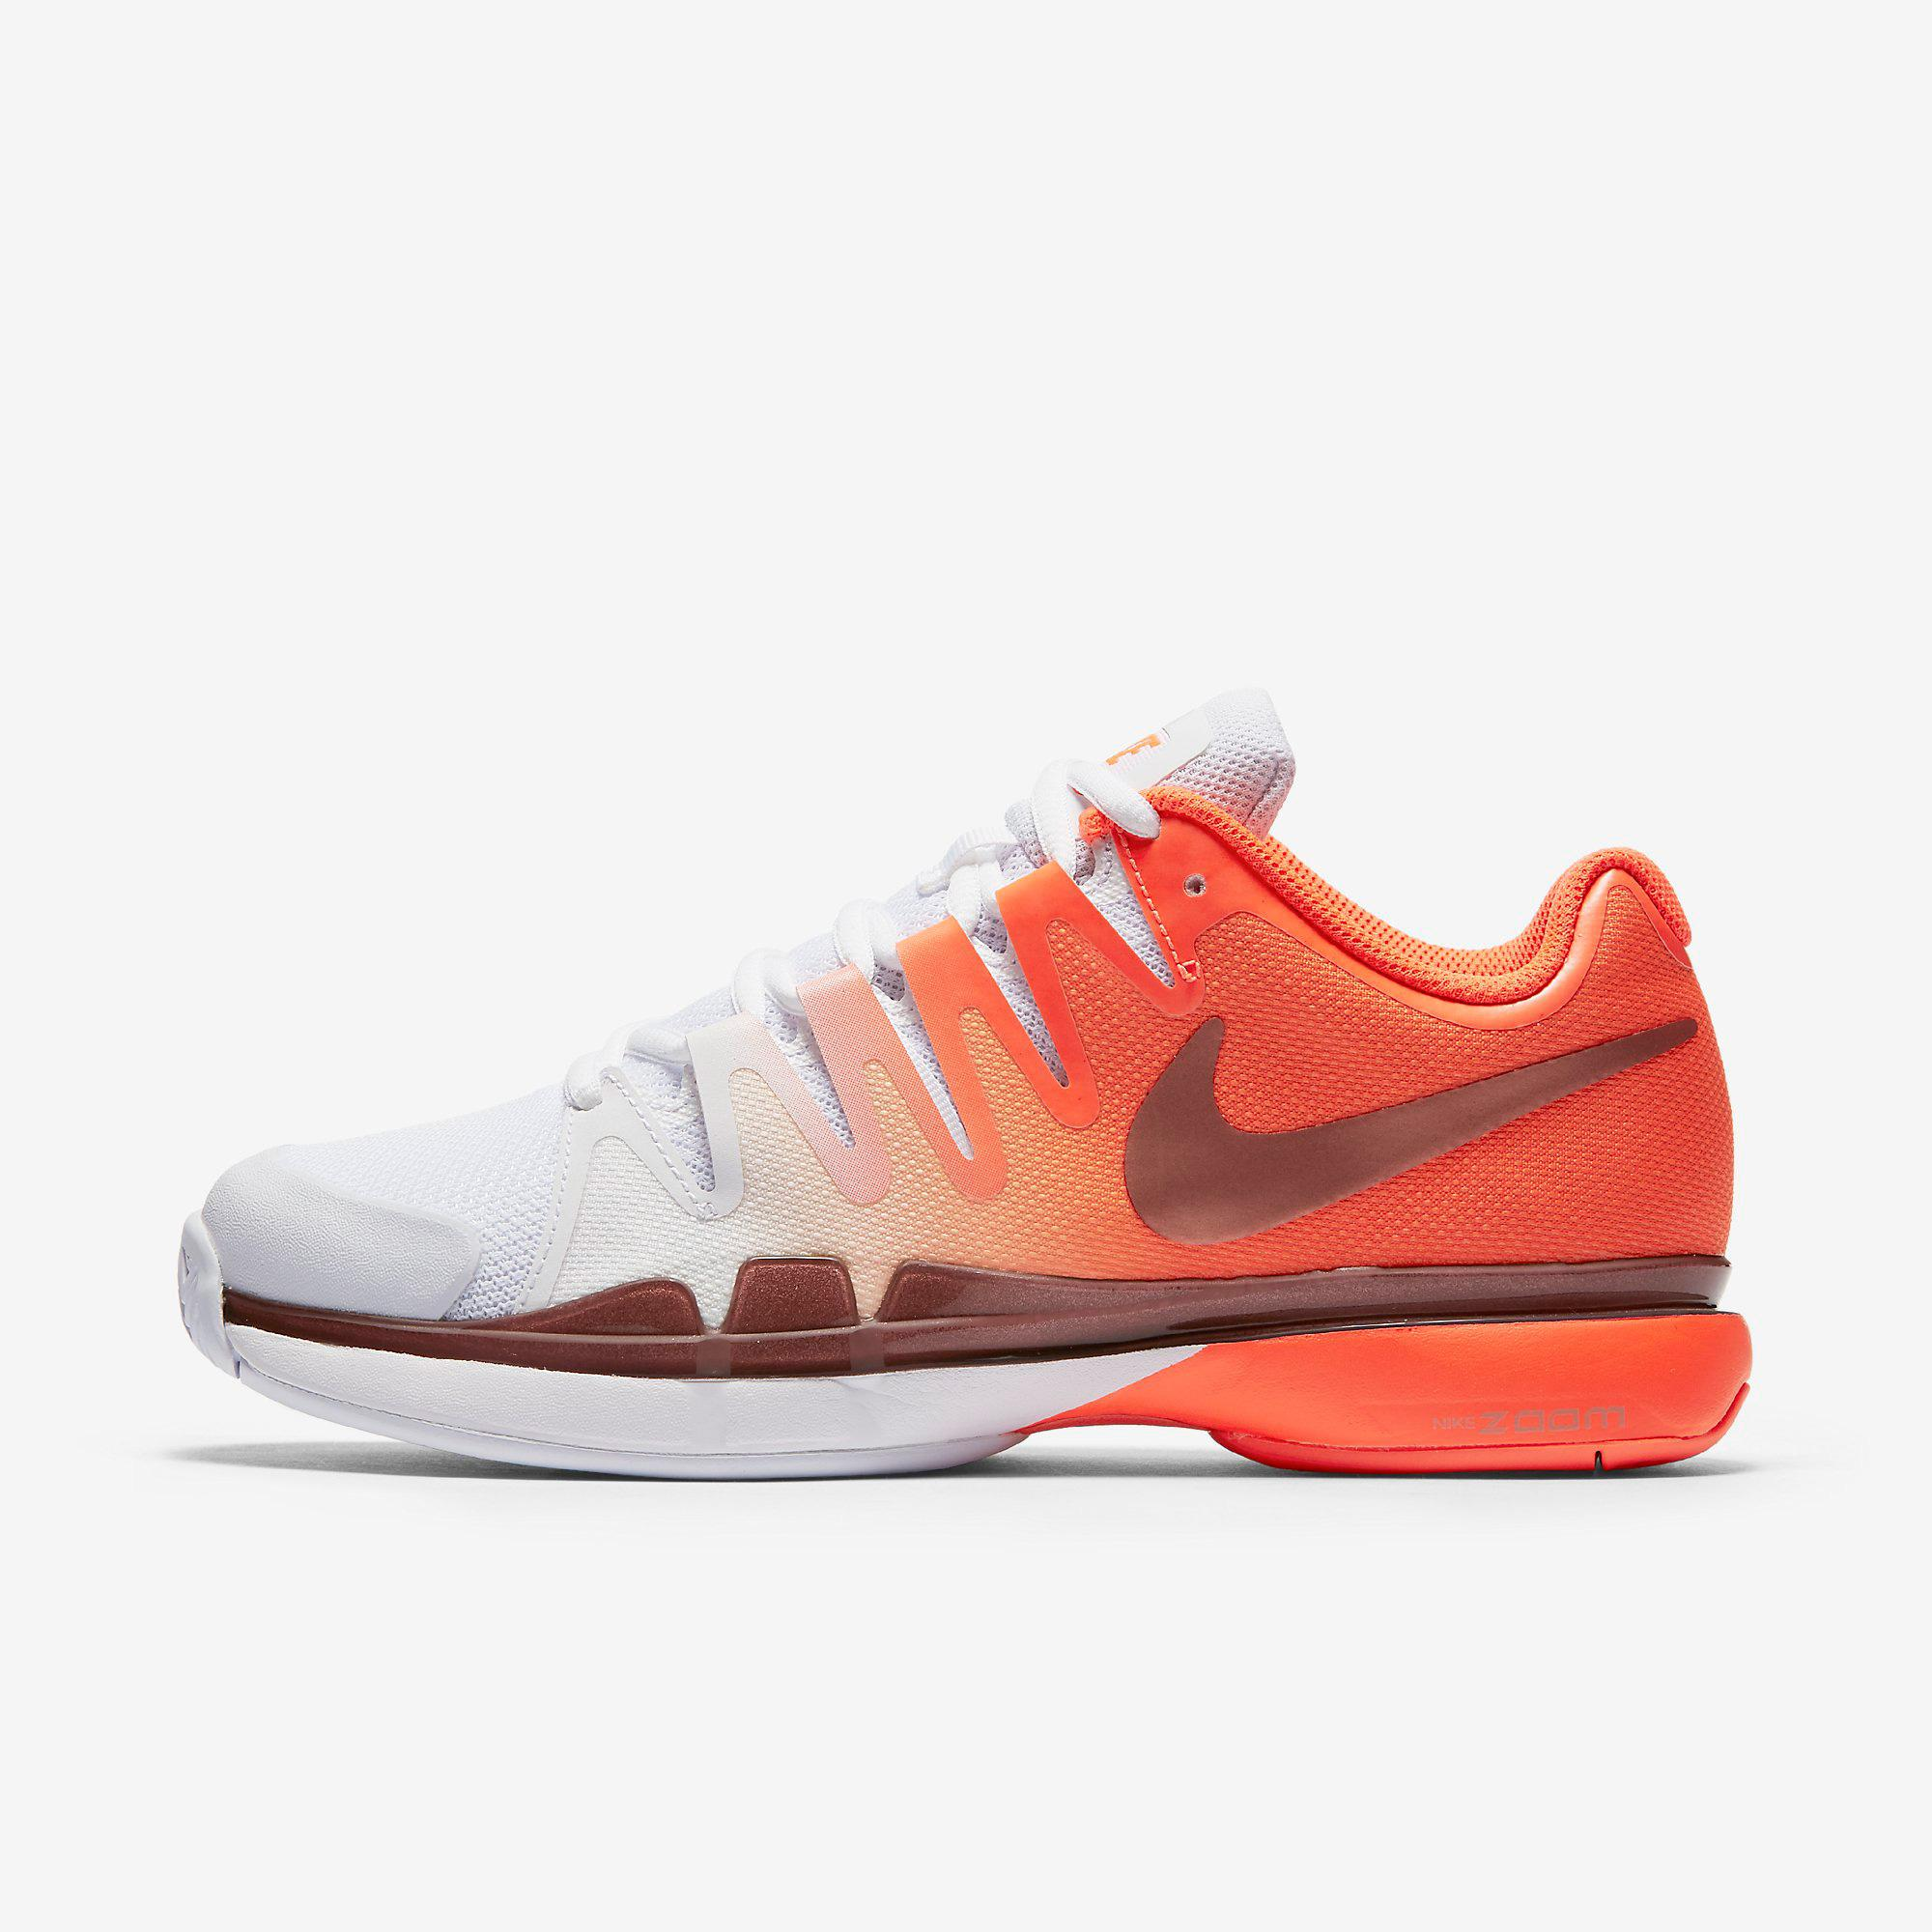 Nike Zoom Vapor  Tour Tennis Shoes Womens